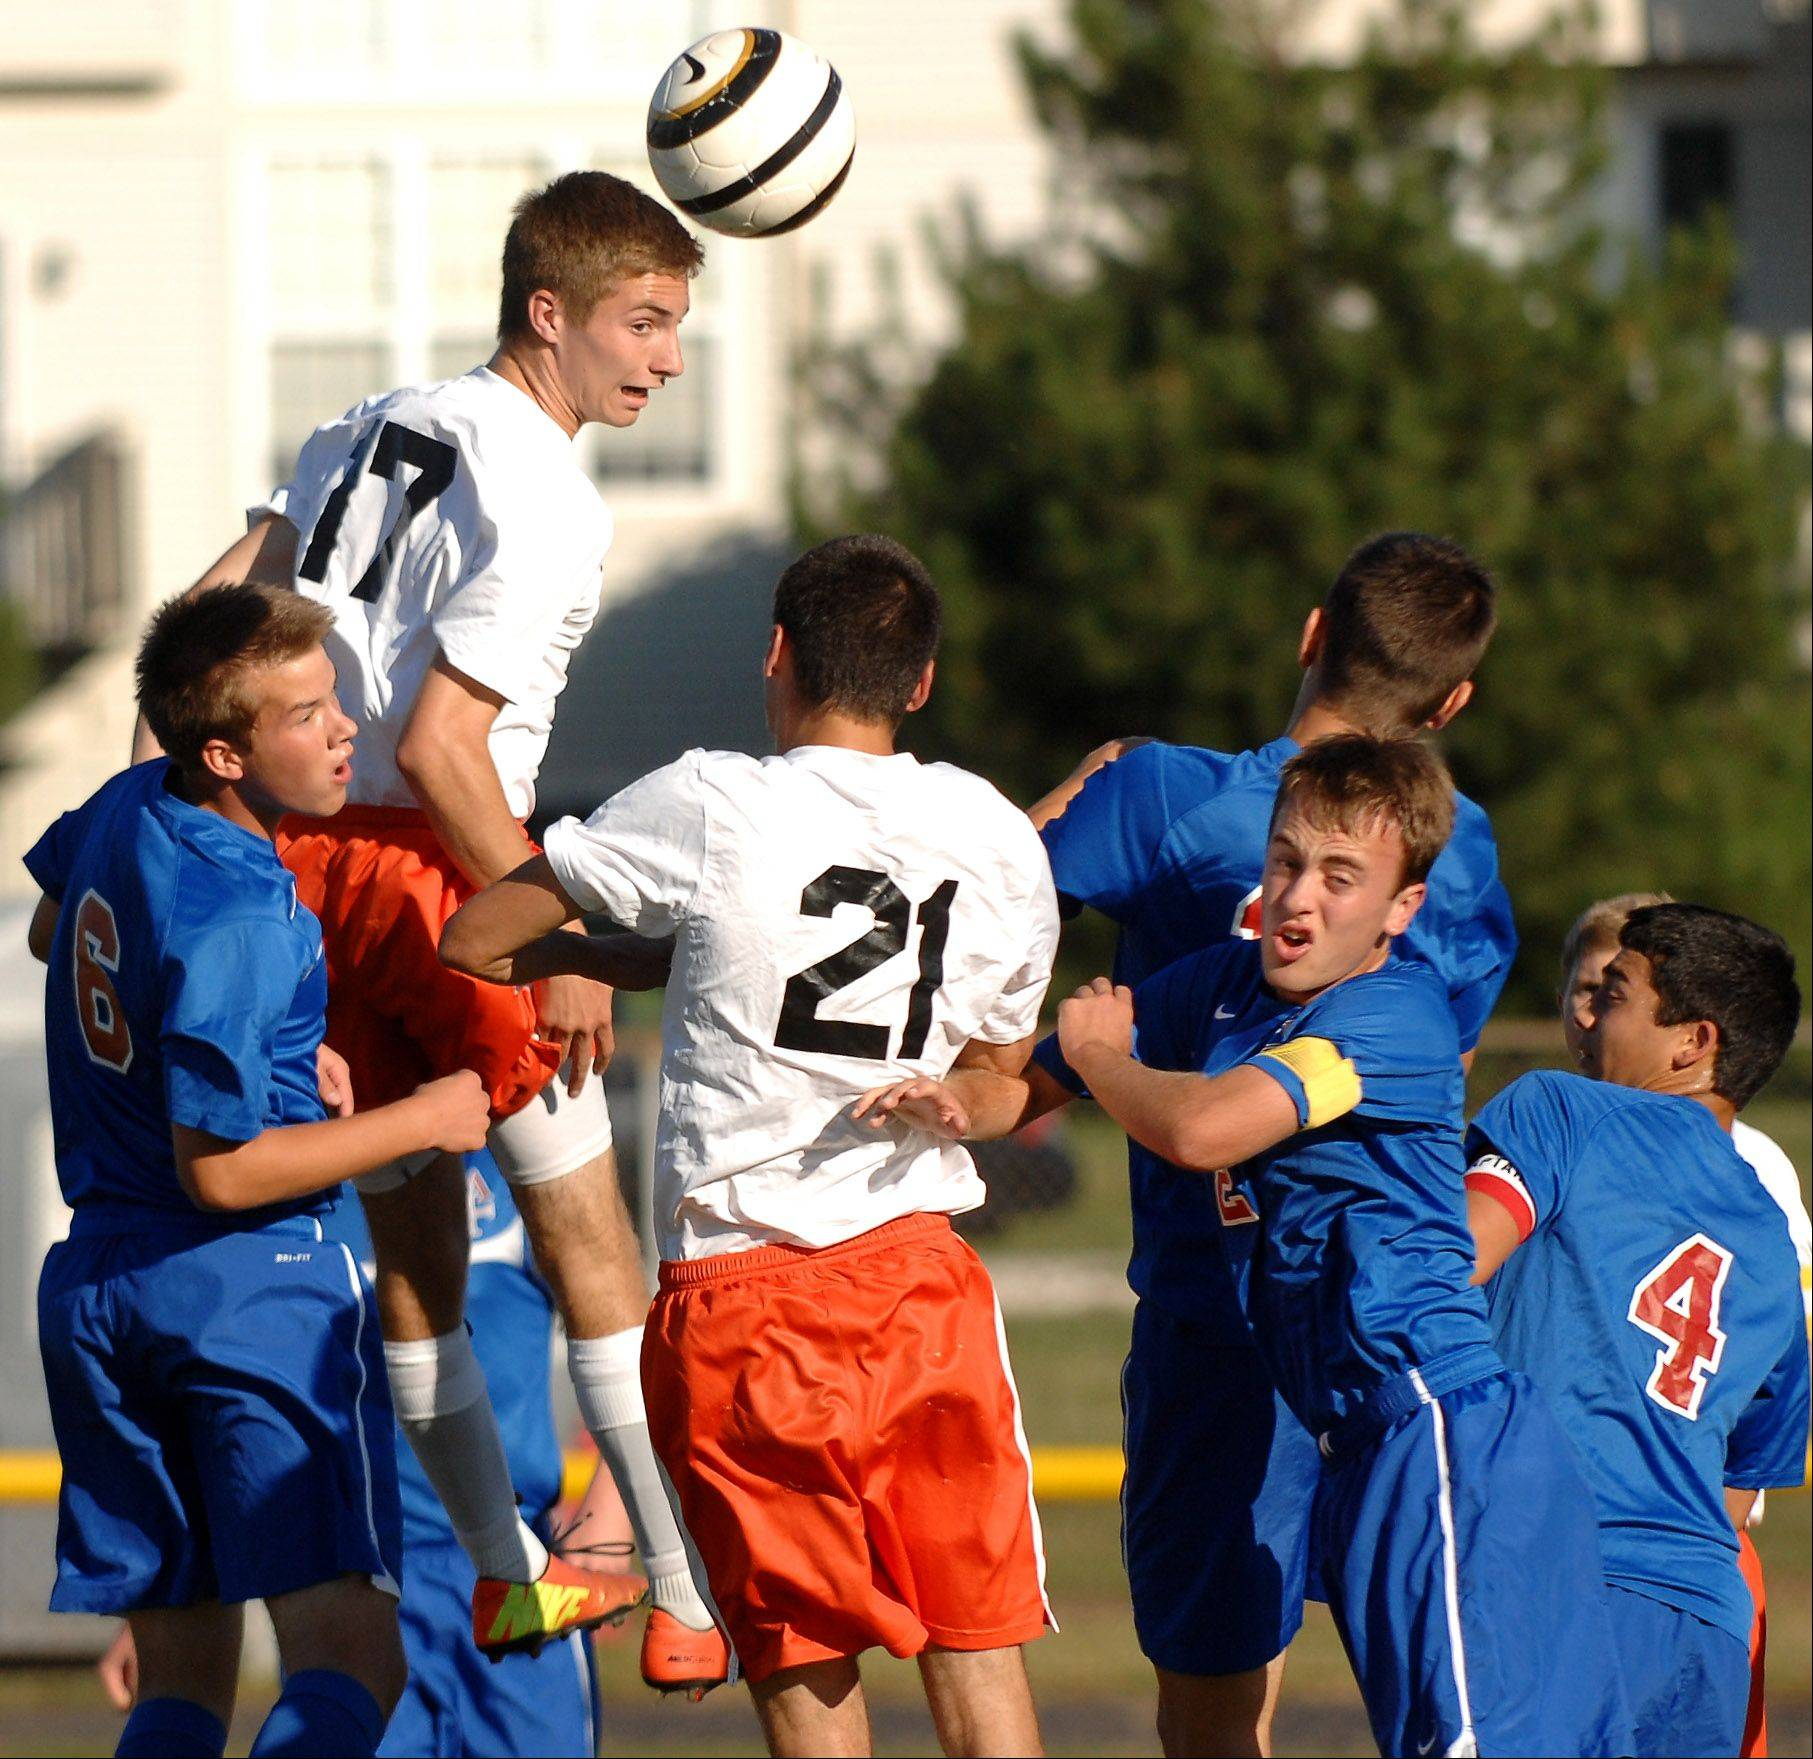 St. Charles East�s Evan DiLeonardi wins a header on a corner kick against Marmion during Thursday�s game in St. Charles.